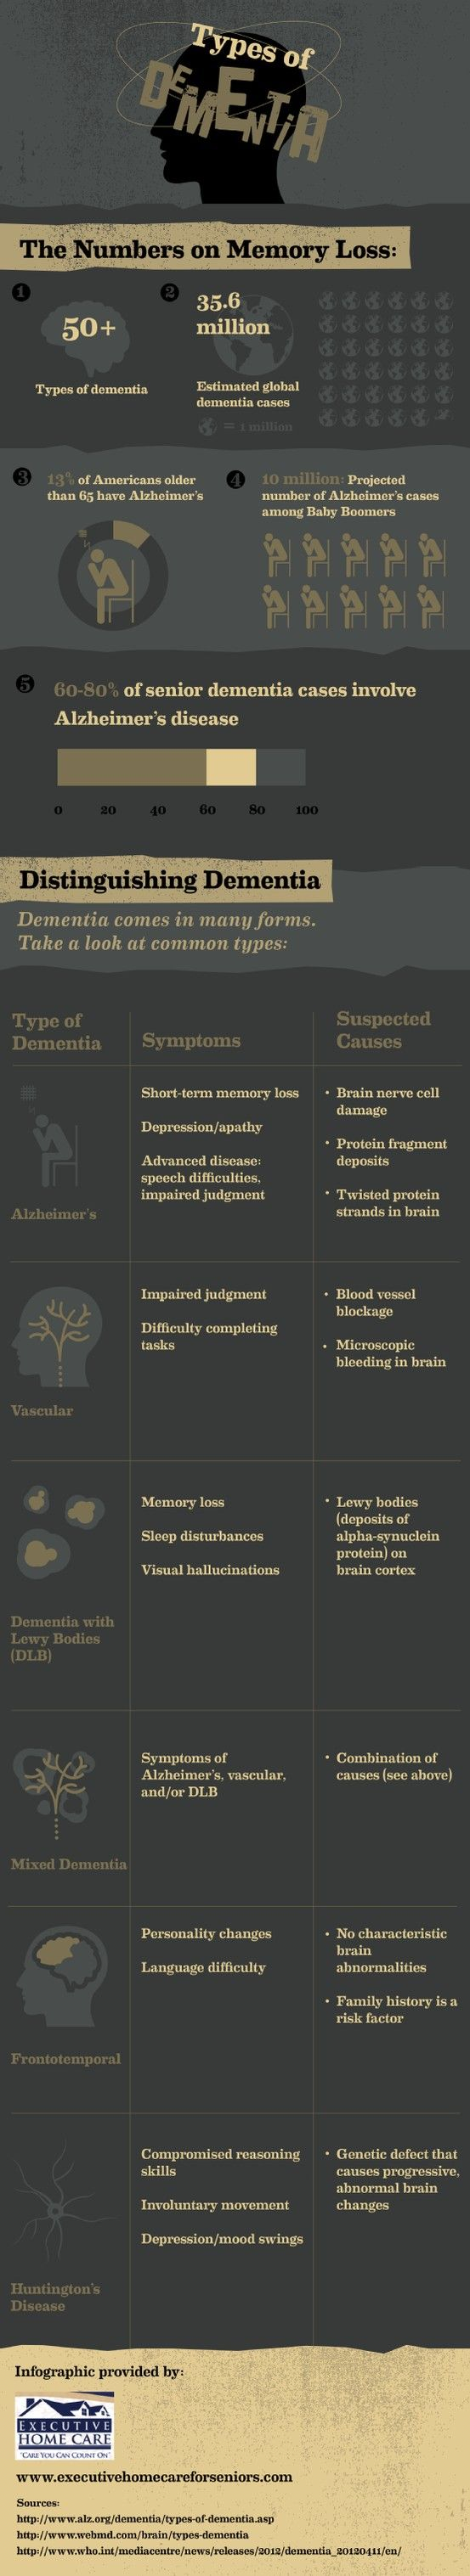 Alzheimer's is a form of dementia that results in short-term memory loss, depression, and even impaired speech. Learn more about Alzheimer's and other forms of dementia in this infographic from an in-home elder care company